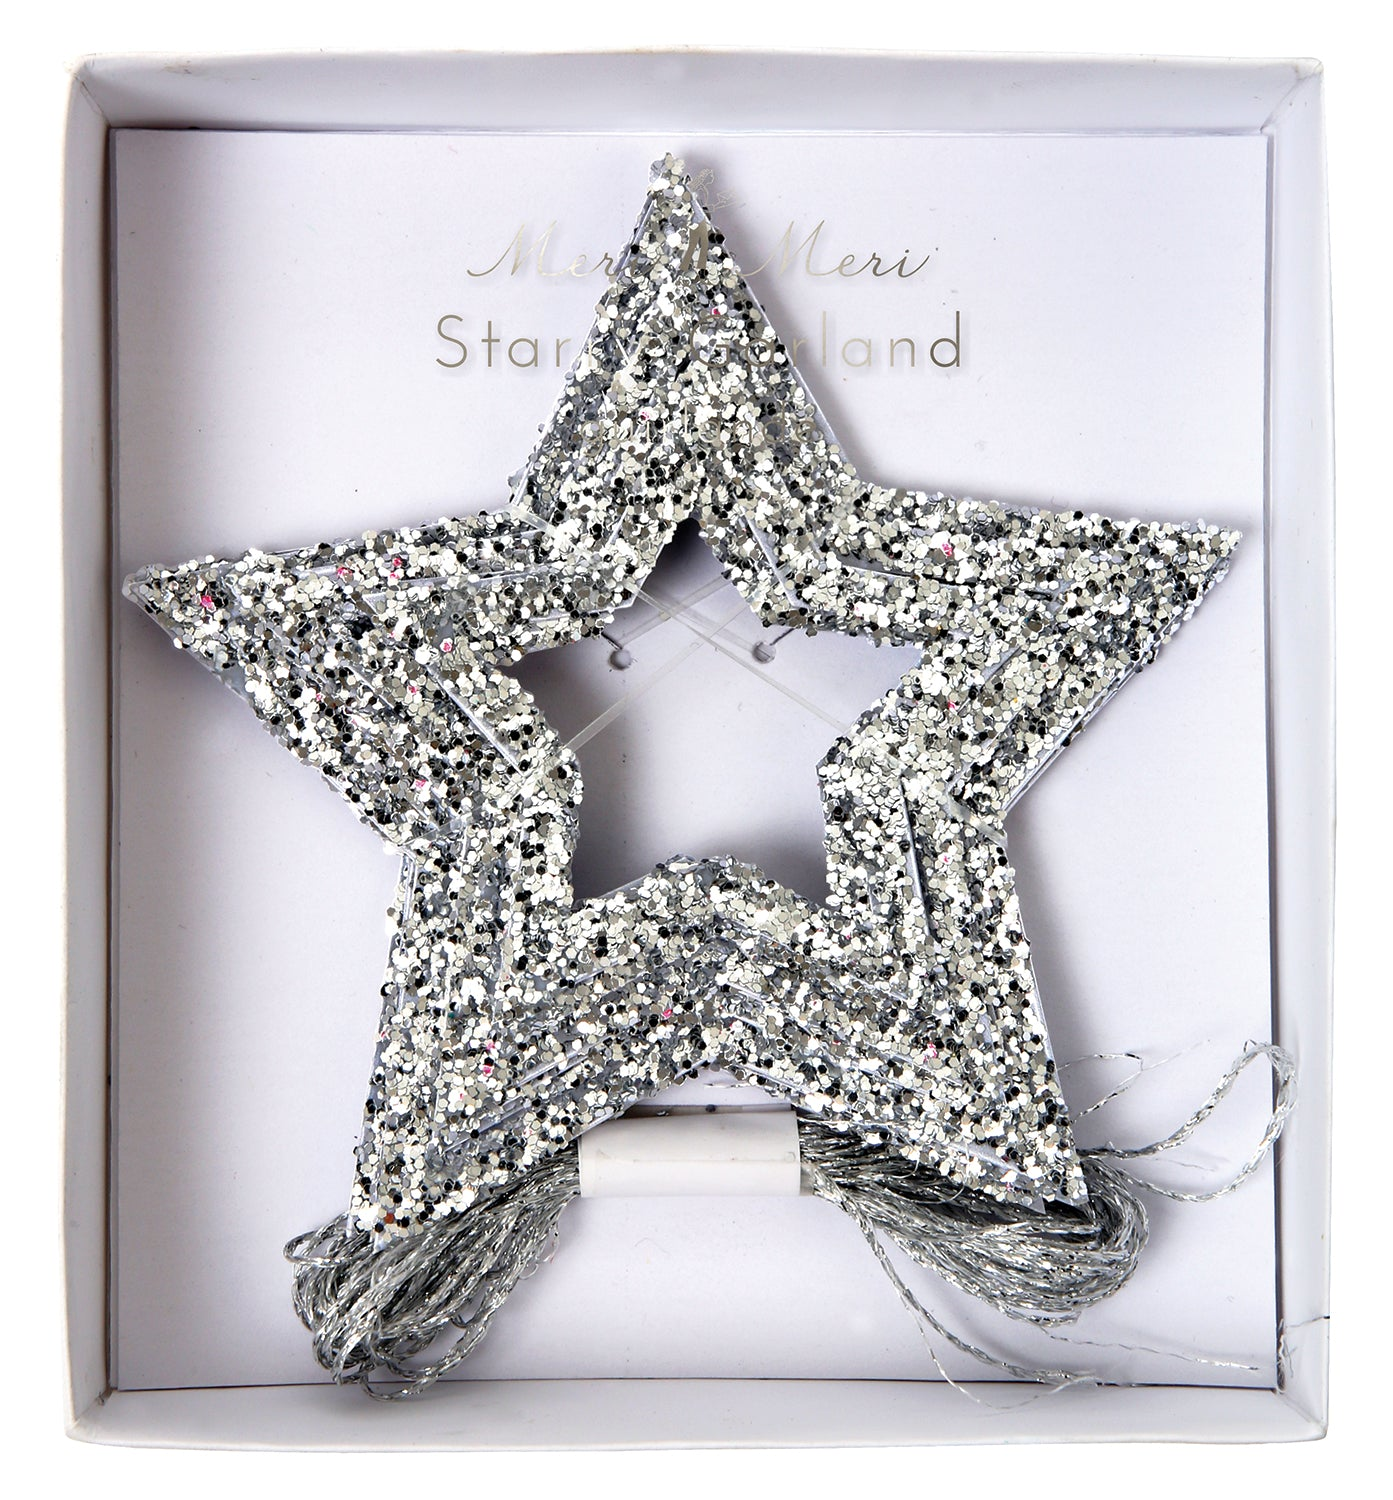 Star cut out garland with 3 varying star sizes in chunky silver metallic glitter